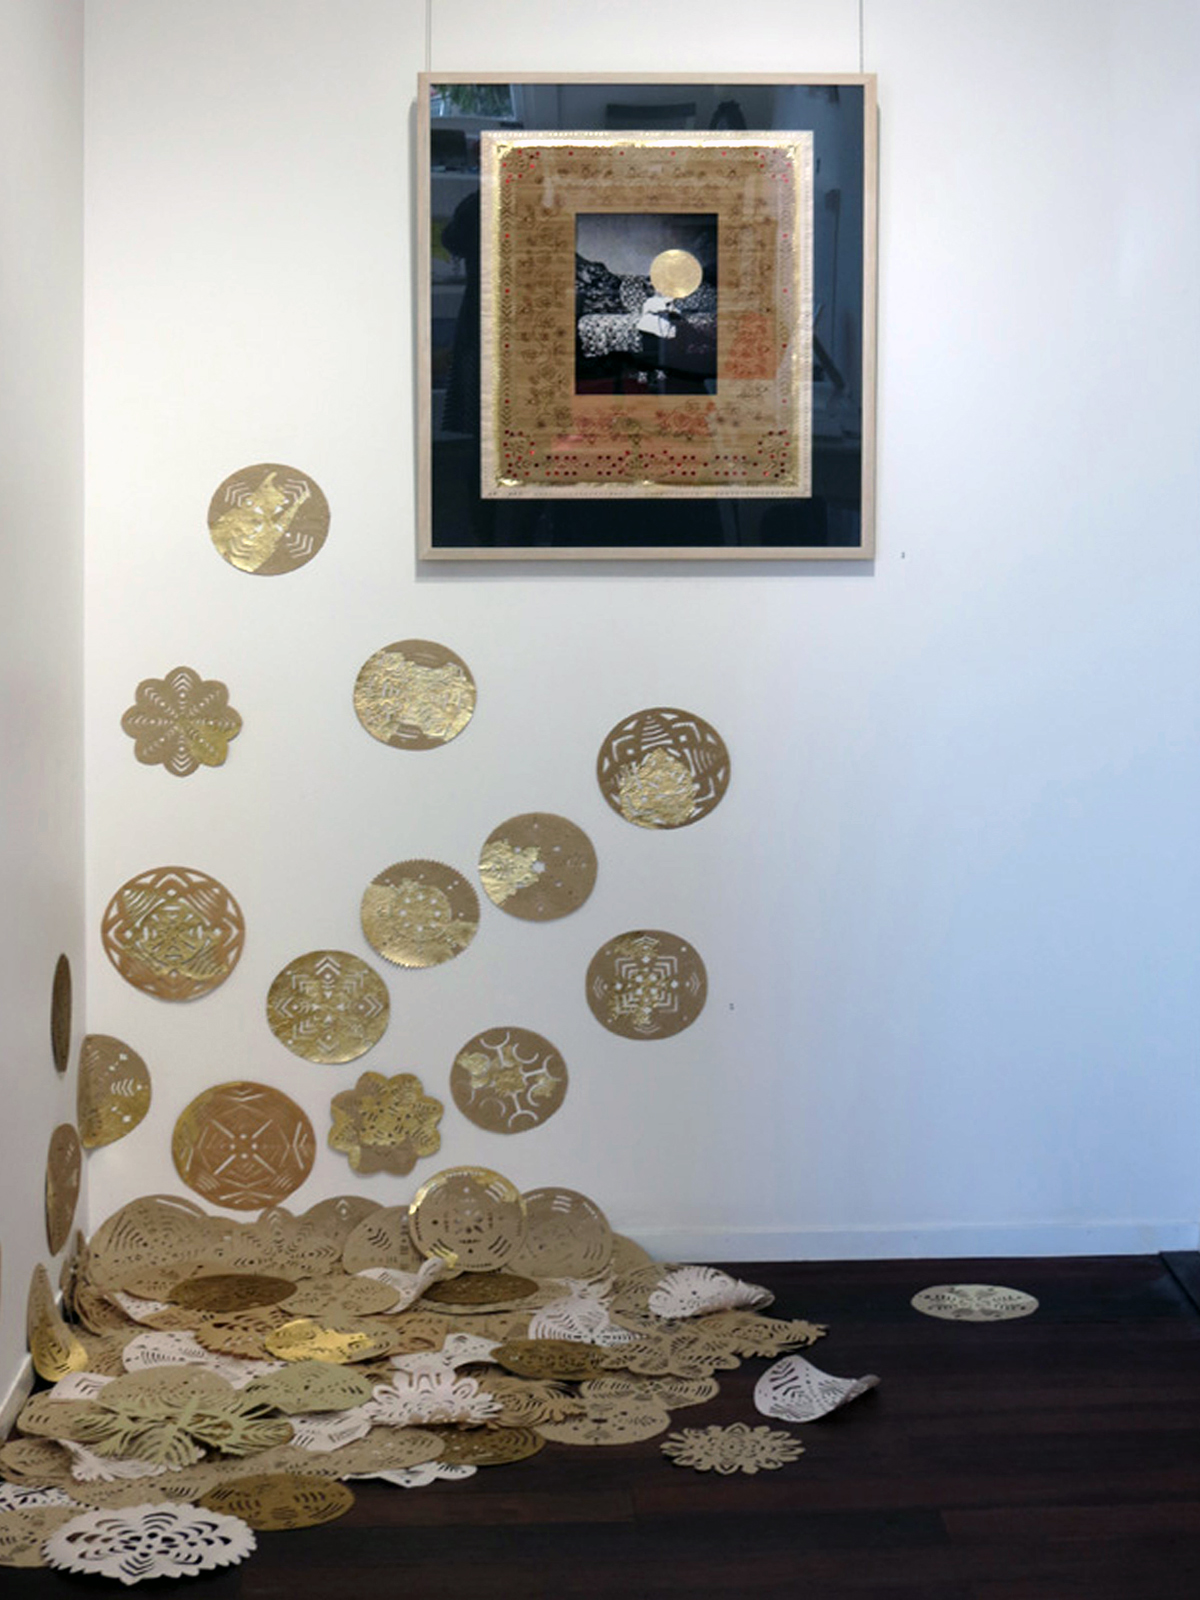 2 & 3.  The Original Place  papercuts and  Family Album 1 ,  Elisa Markes-Young, paper and mixed media